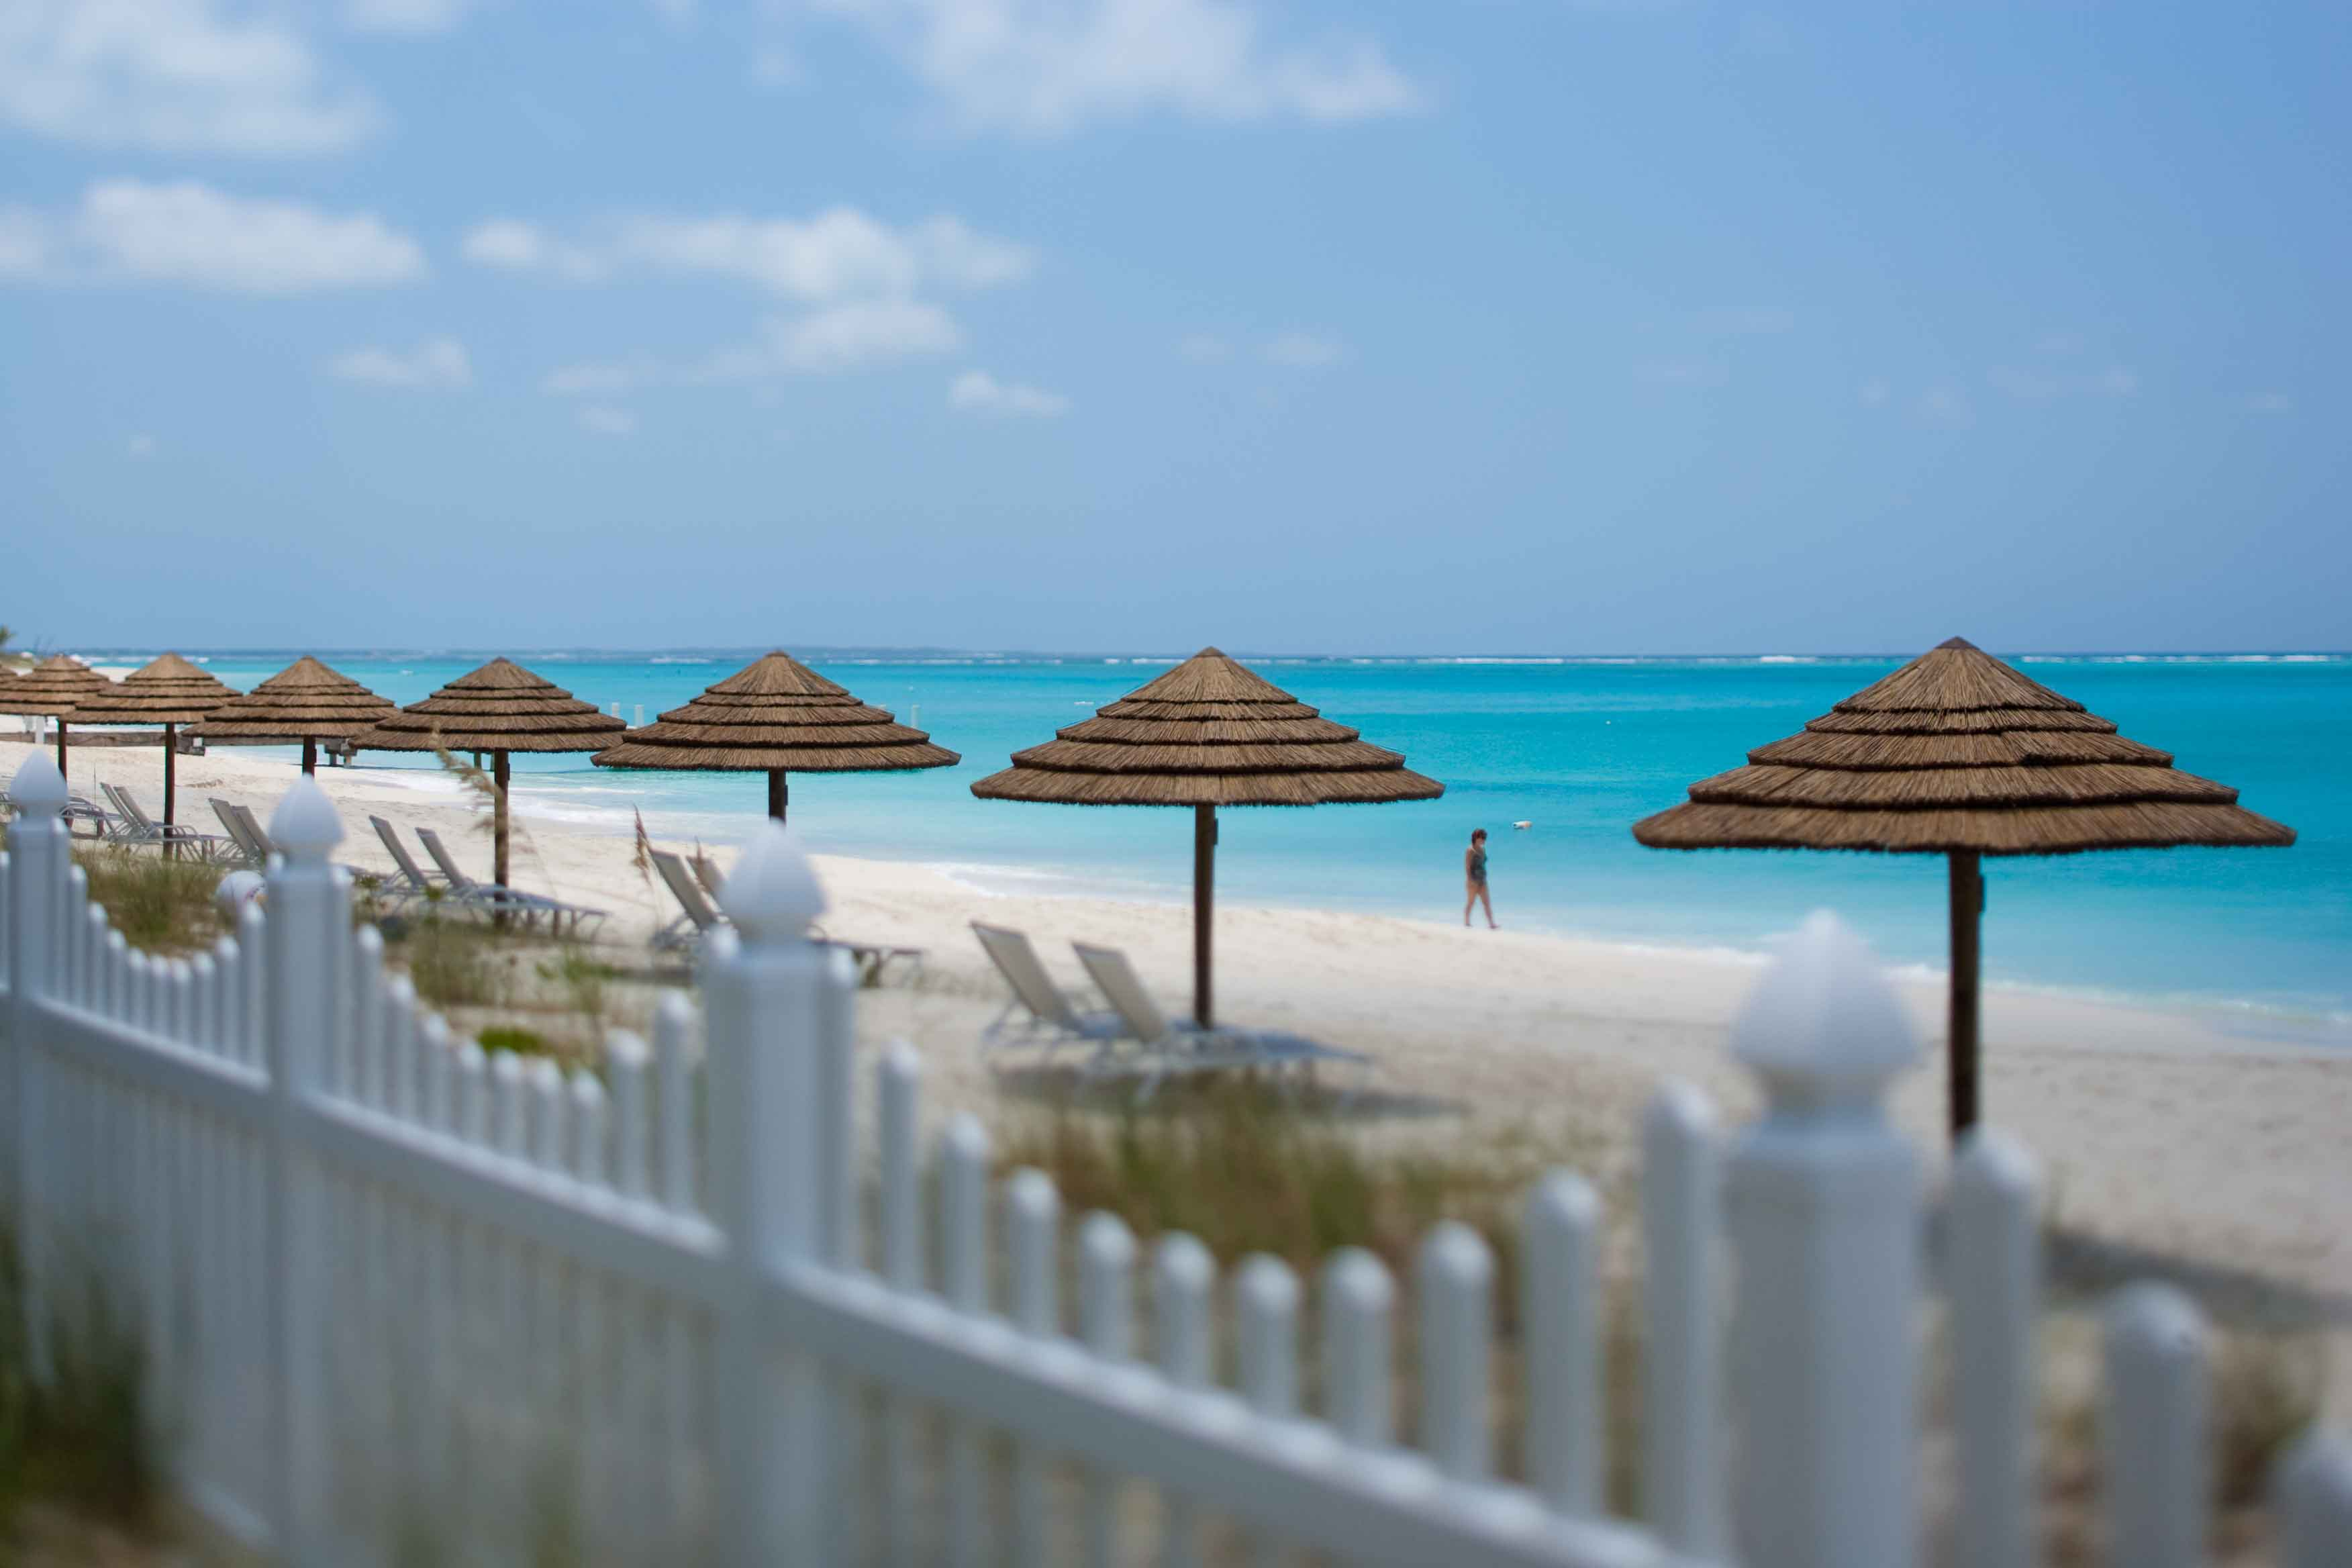 Coral Gardens Resort Turks Caicos Grace Bay Vacation Rentals Apartments Condos South Of The